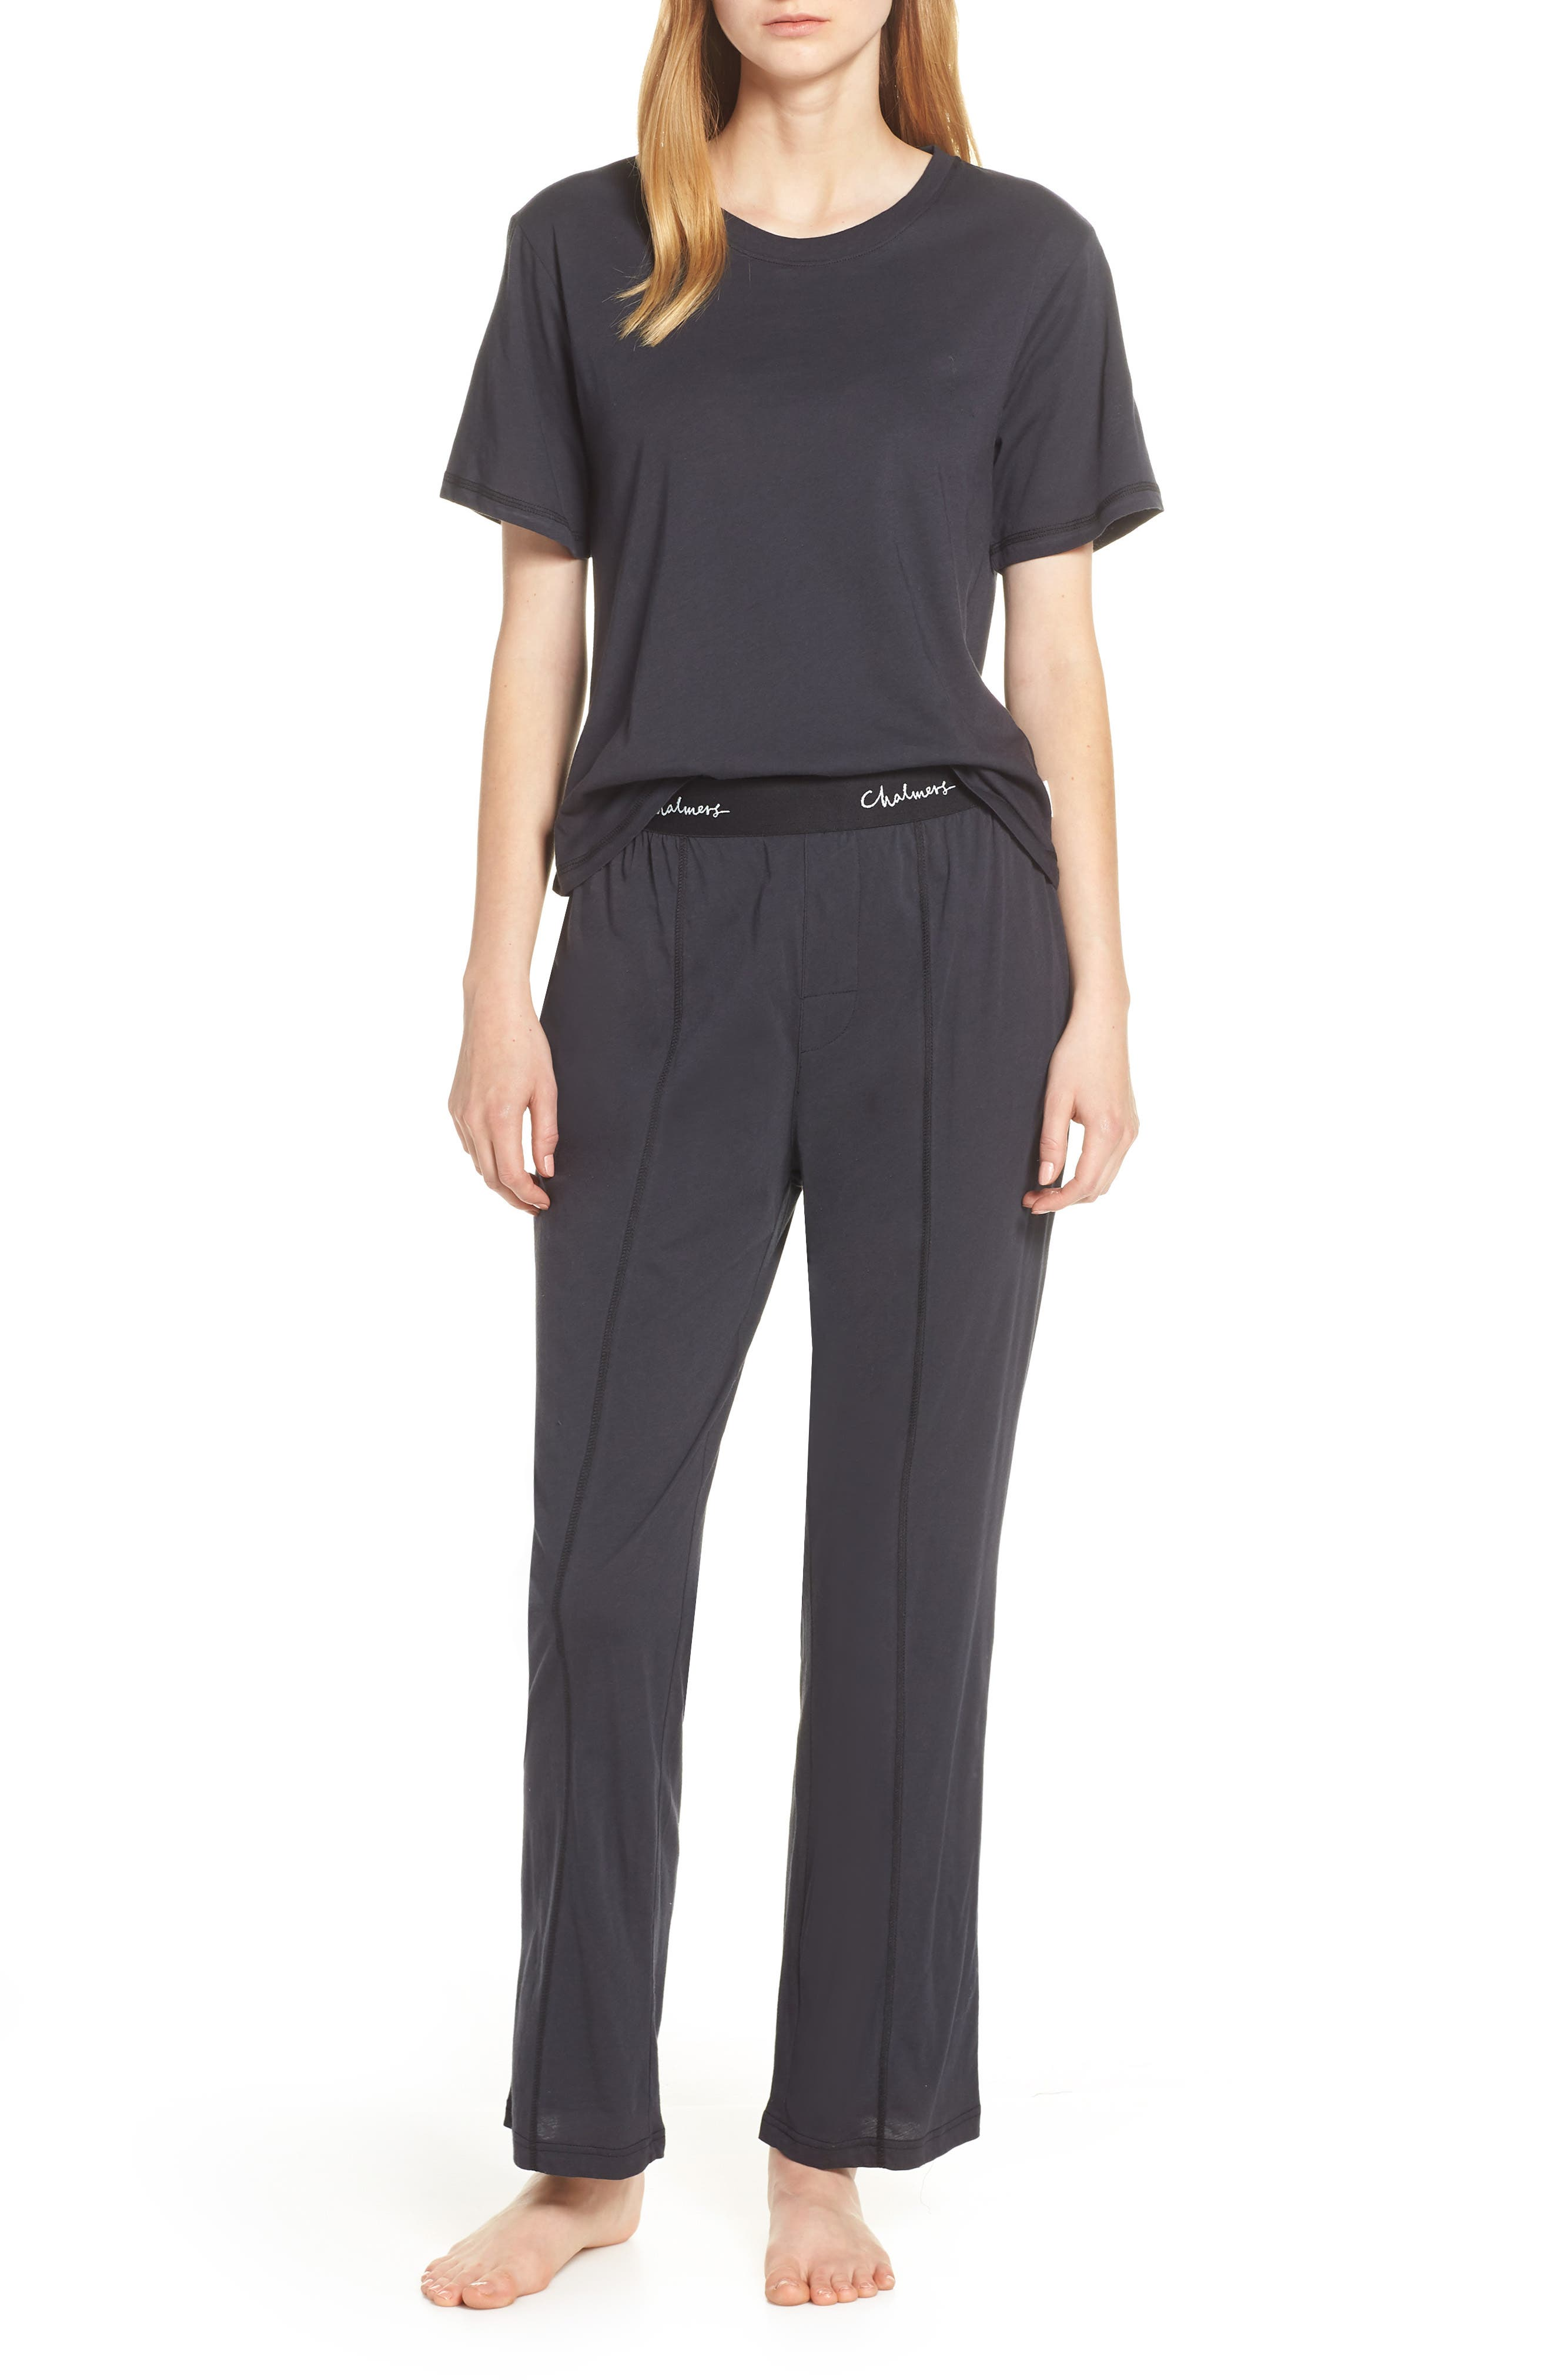 a122a0b6a5 Chalmers All Women | Nordstrom